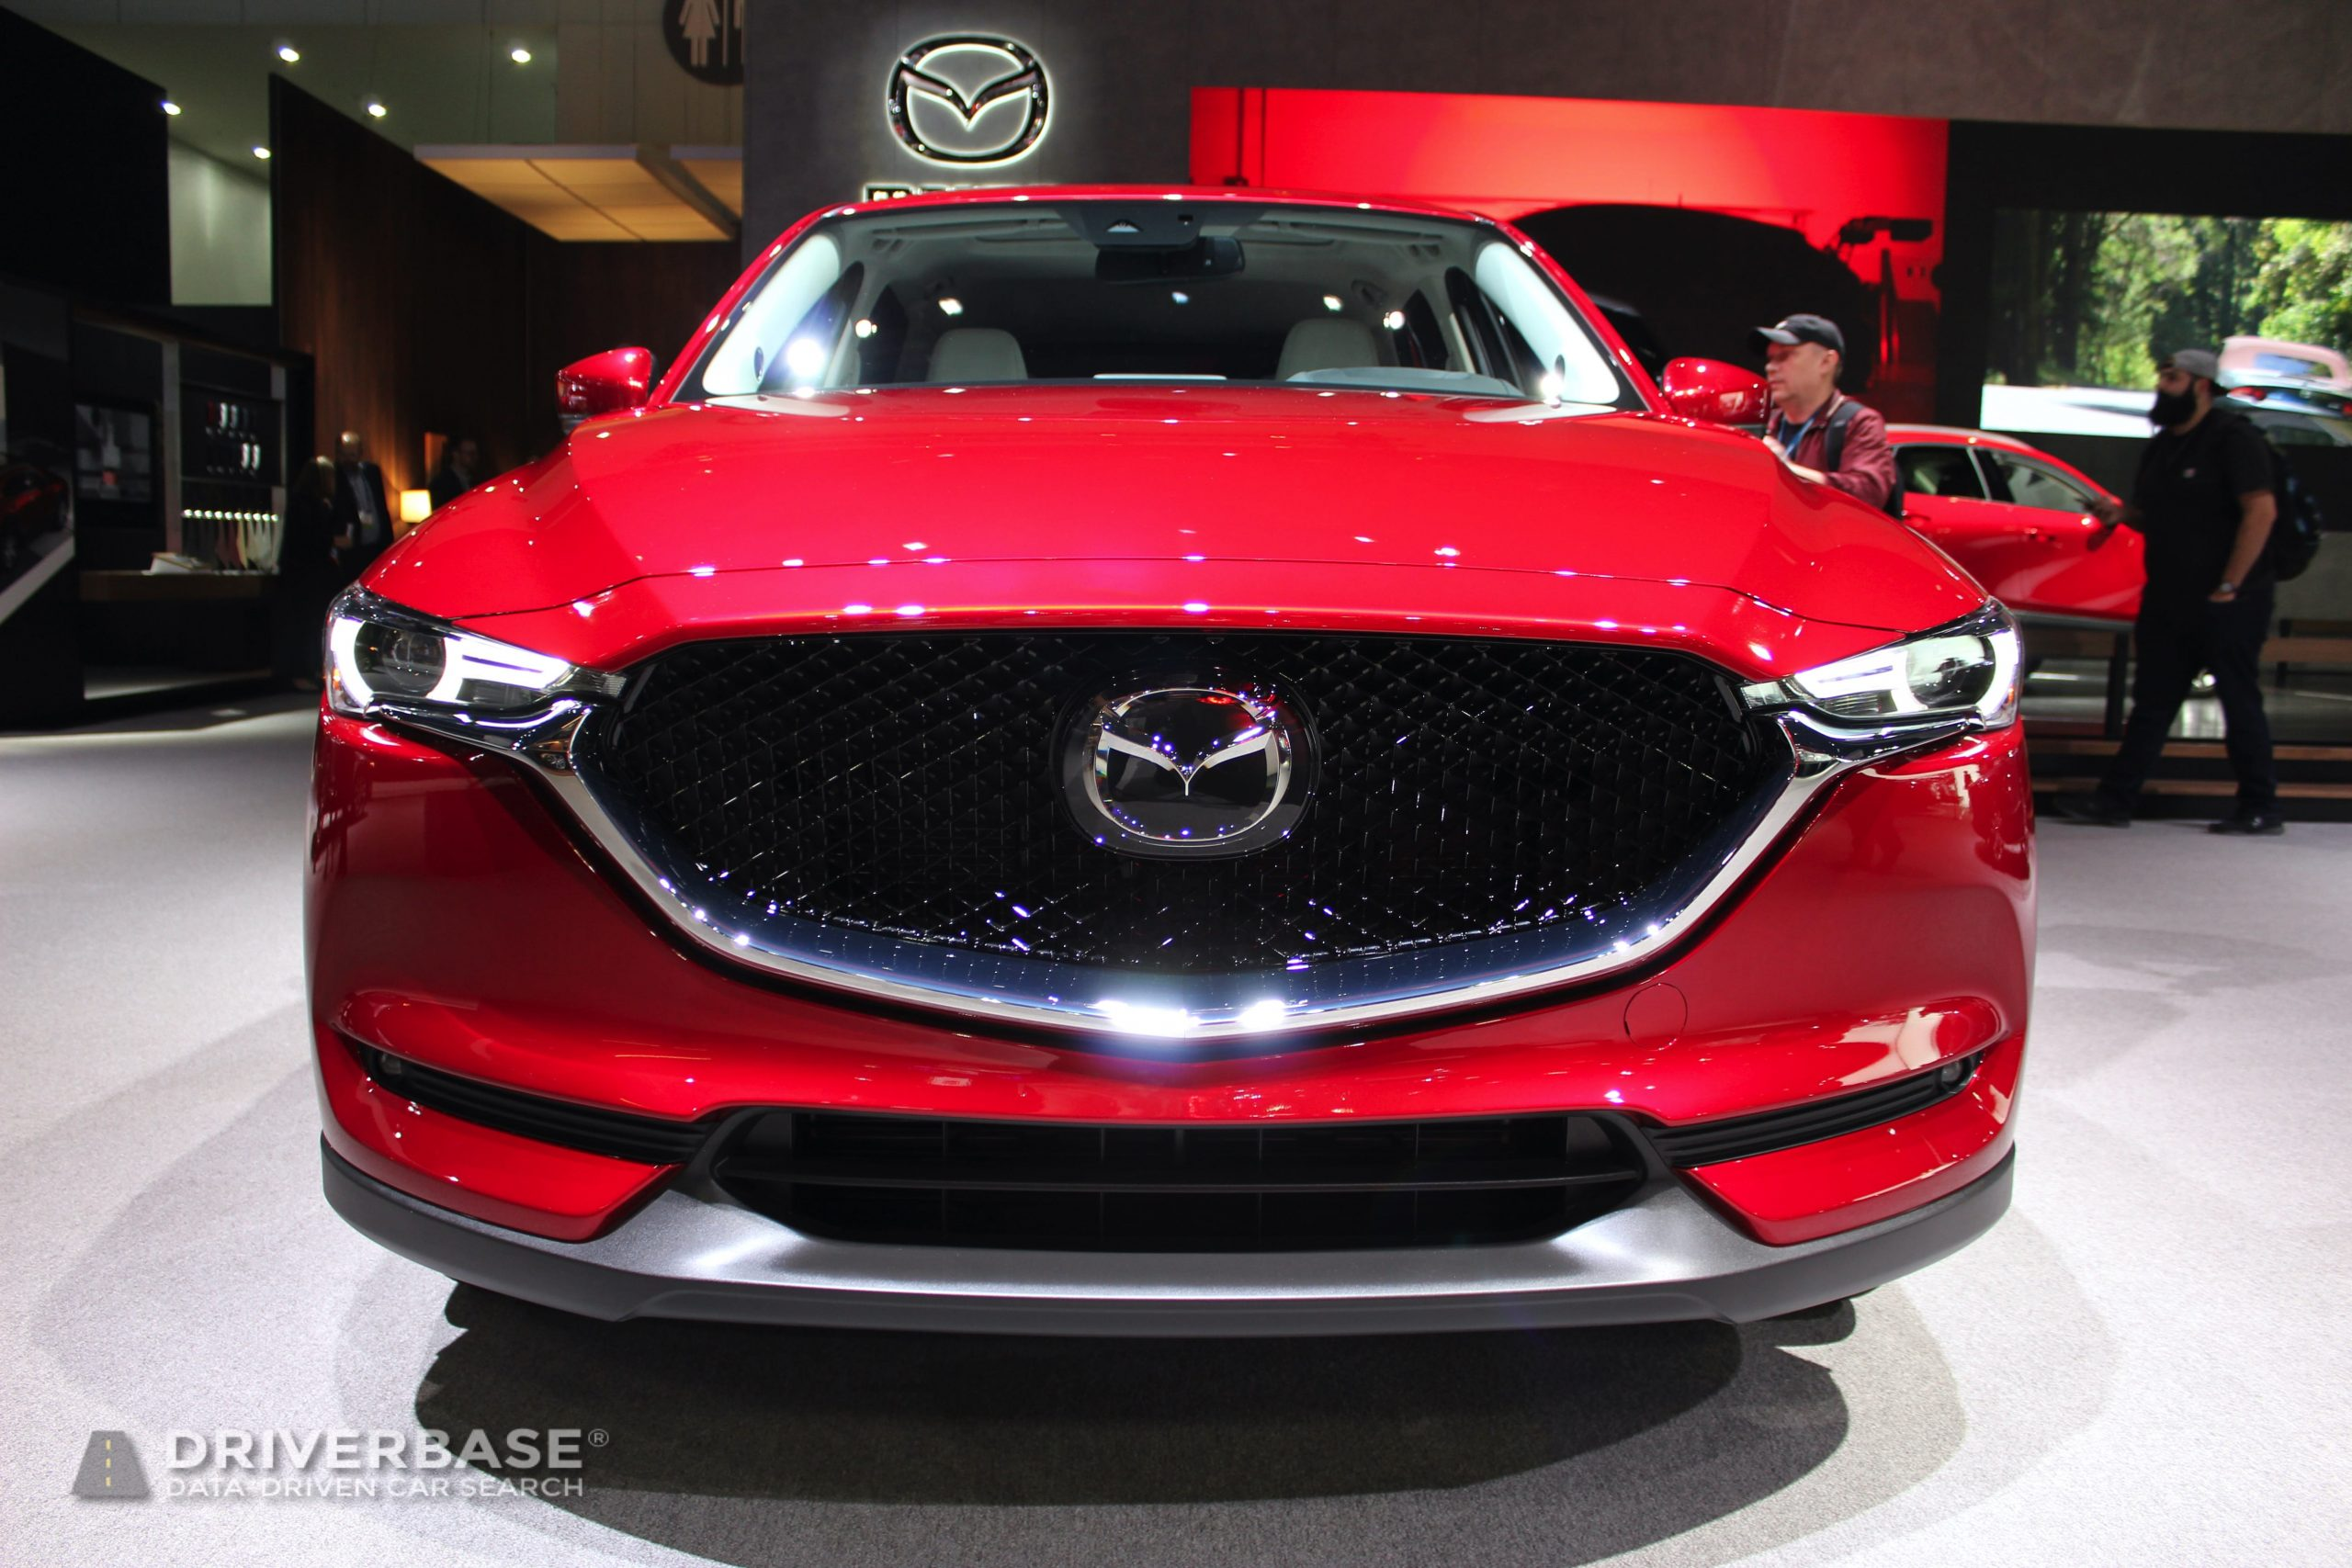 2020 Mazda CX-5 at the 2019 Los Angeles Auto Show